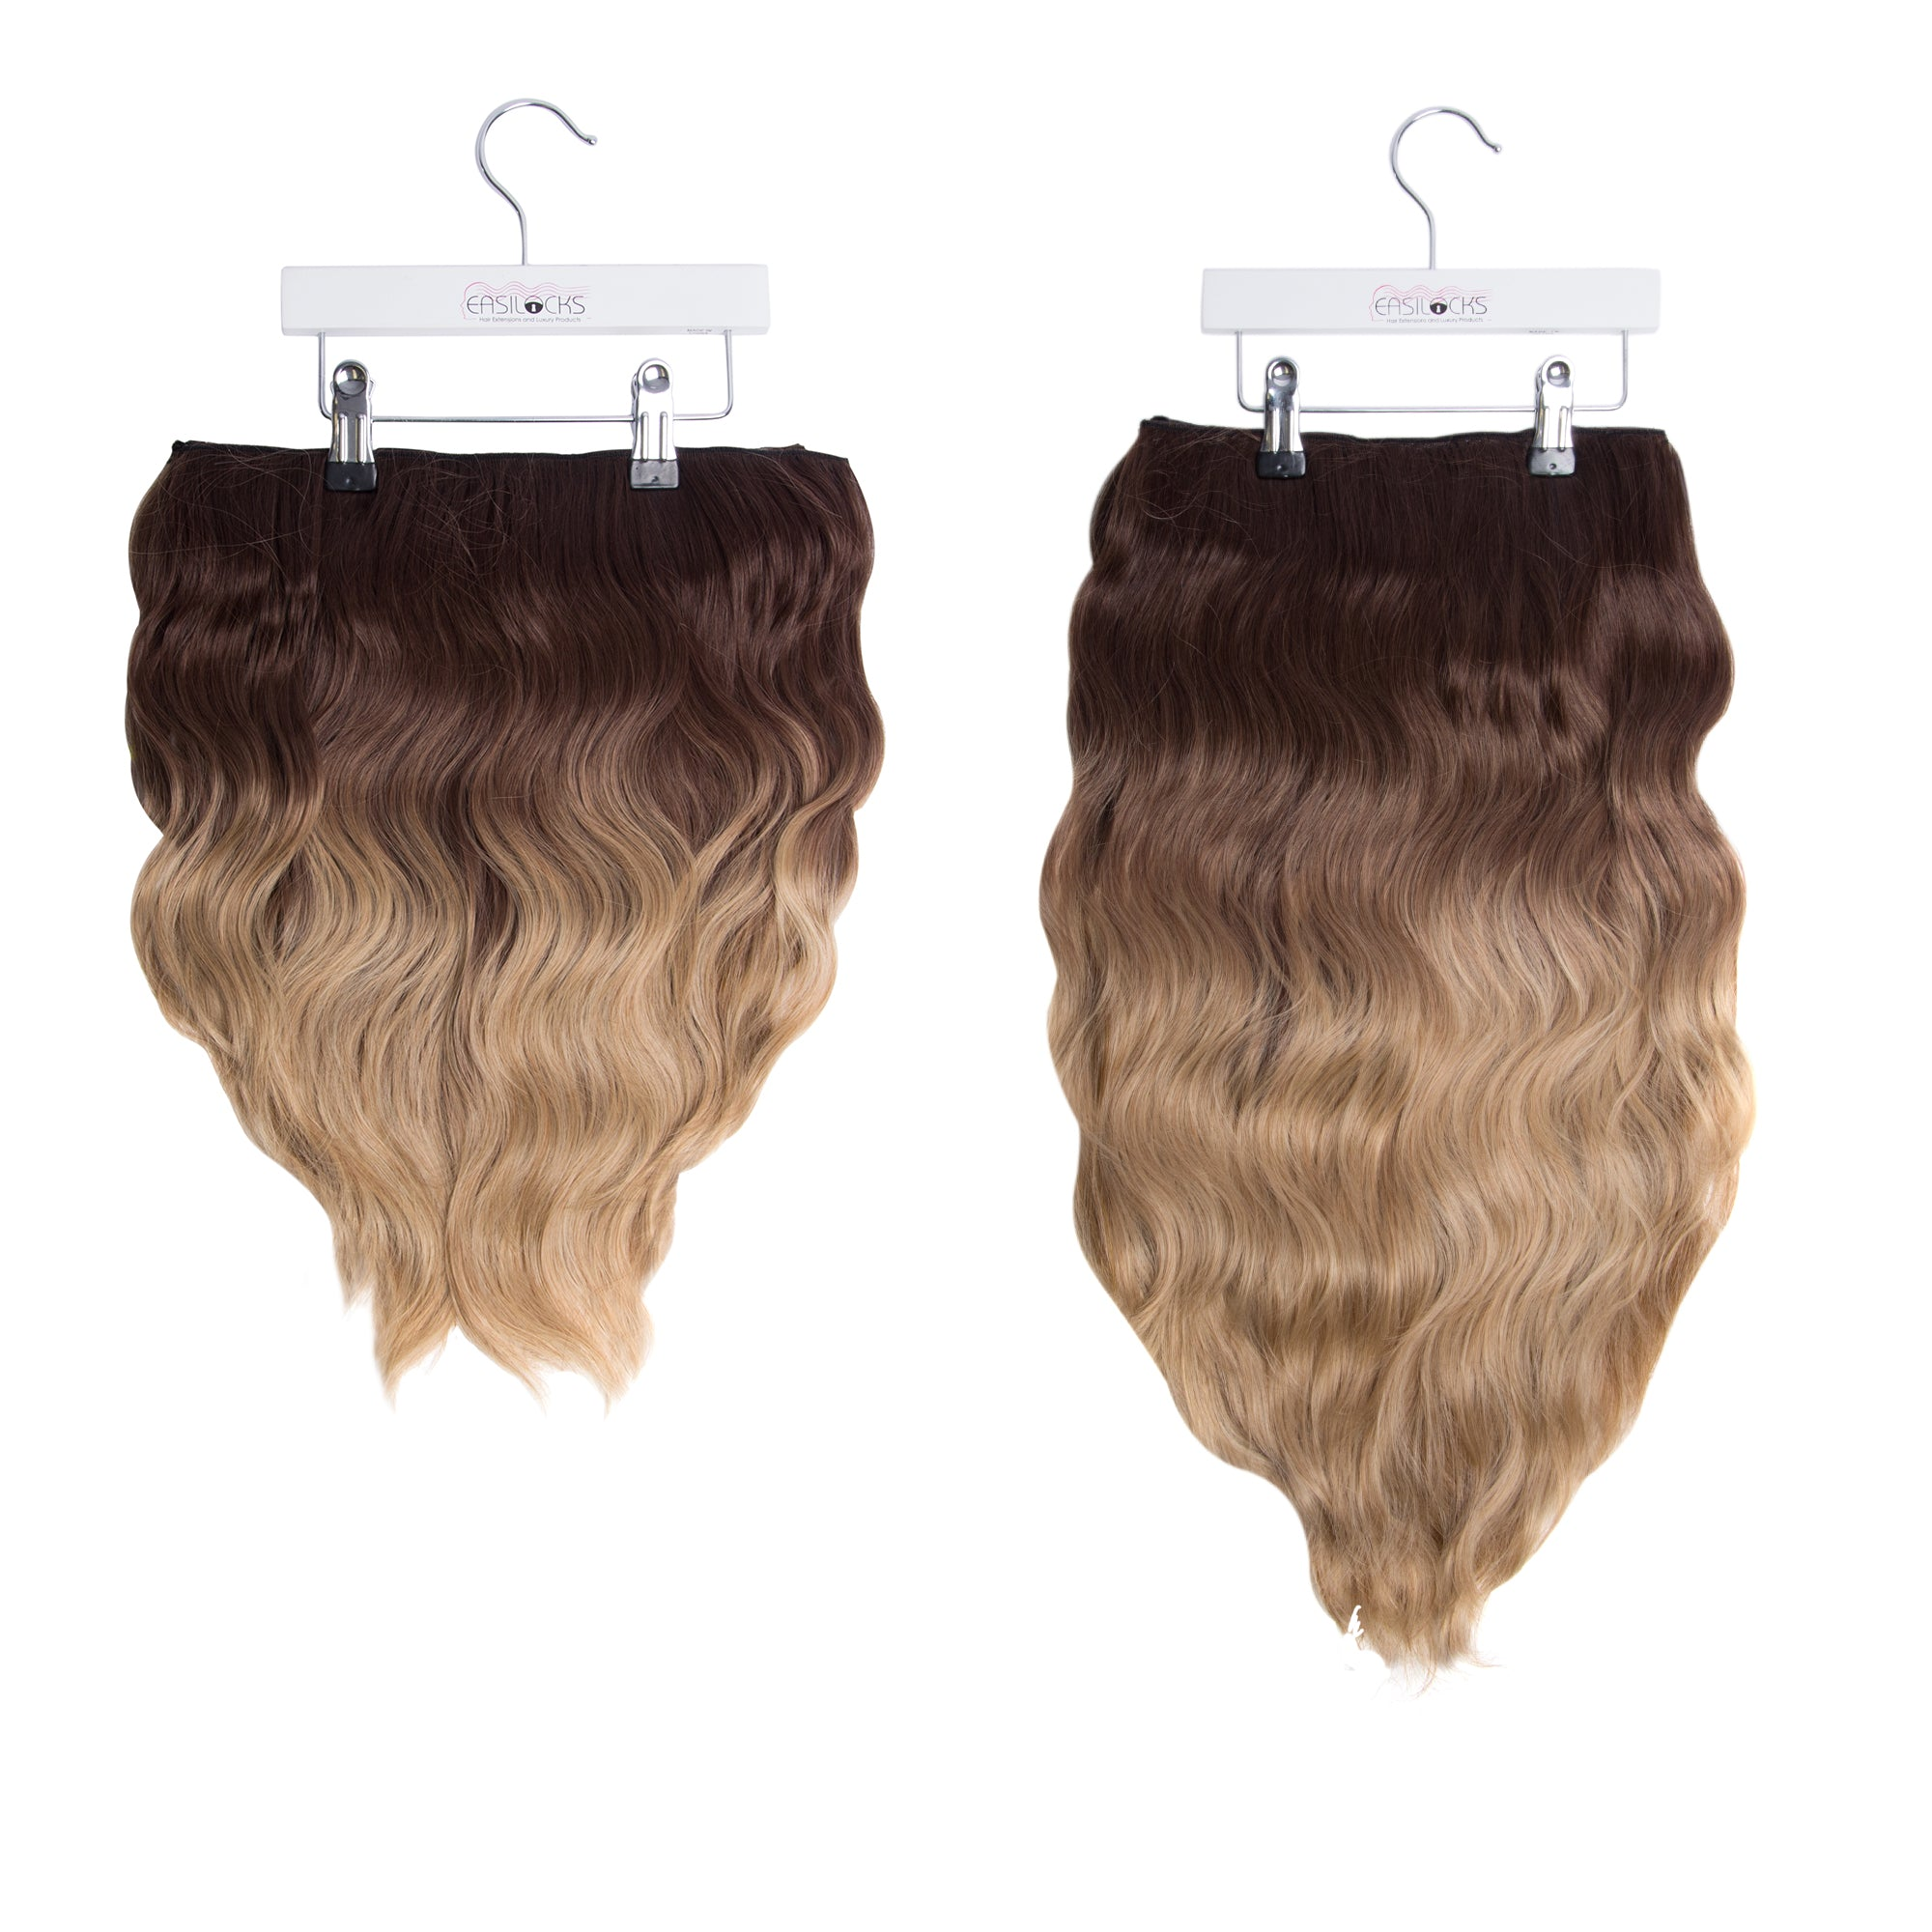 "Miracle Makeover HD Fibre Clip In Hair Extensions - 14"" & 22"" - Lightest Brown Ombre (1319144095824)"